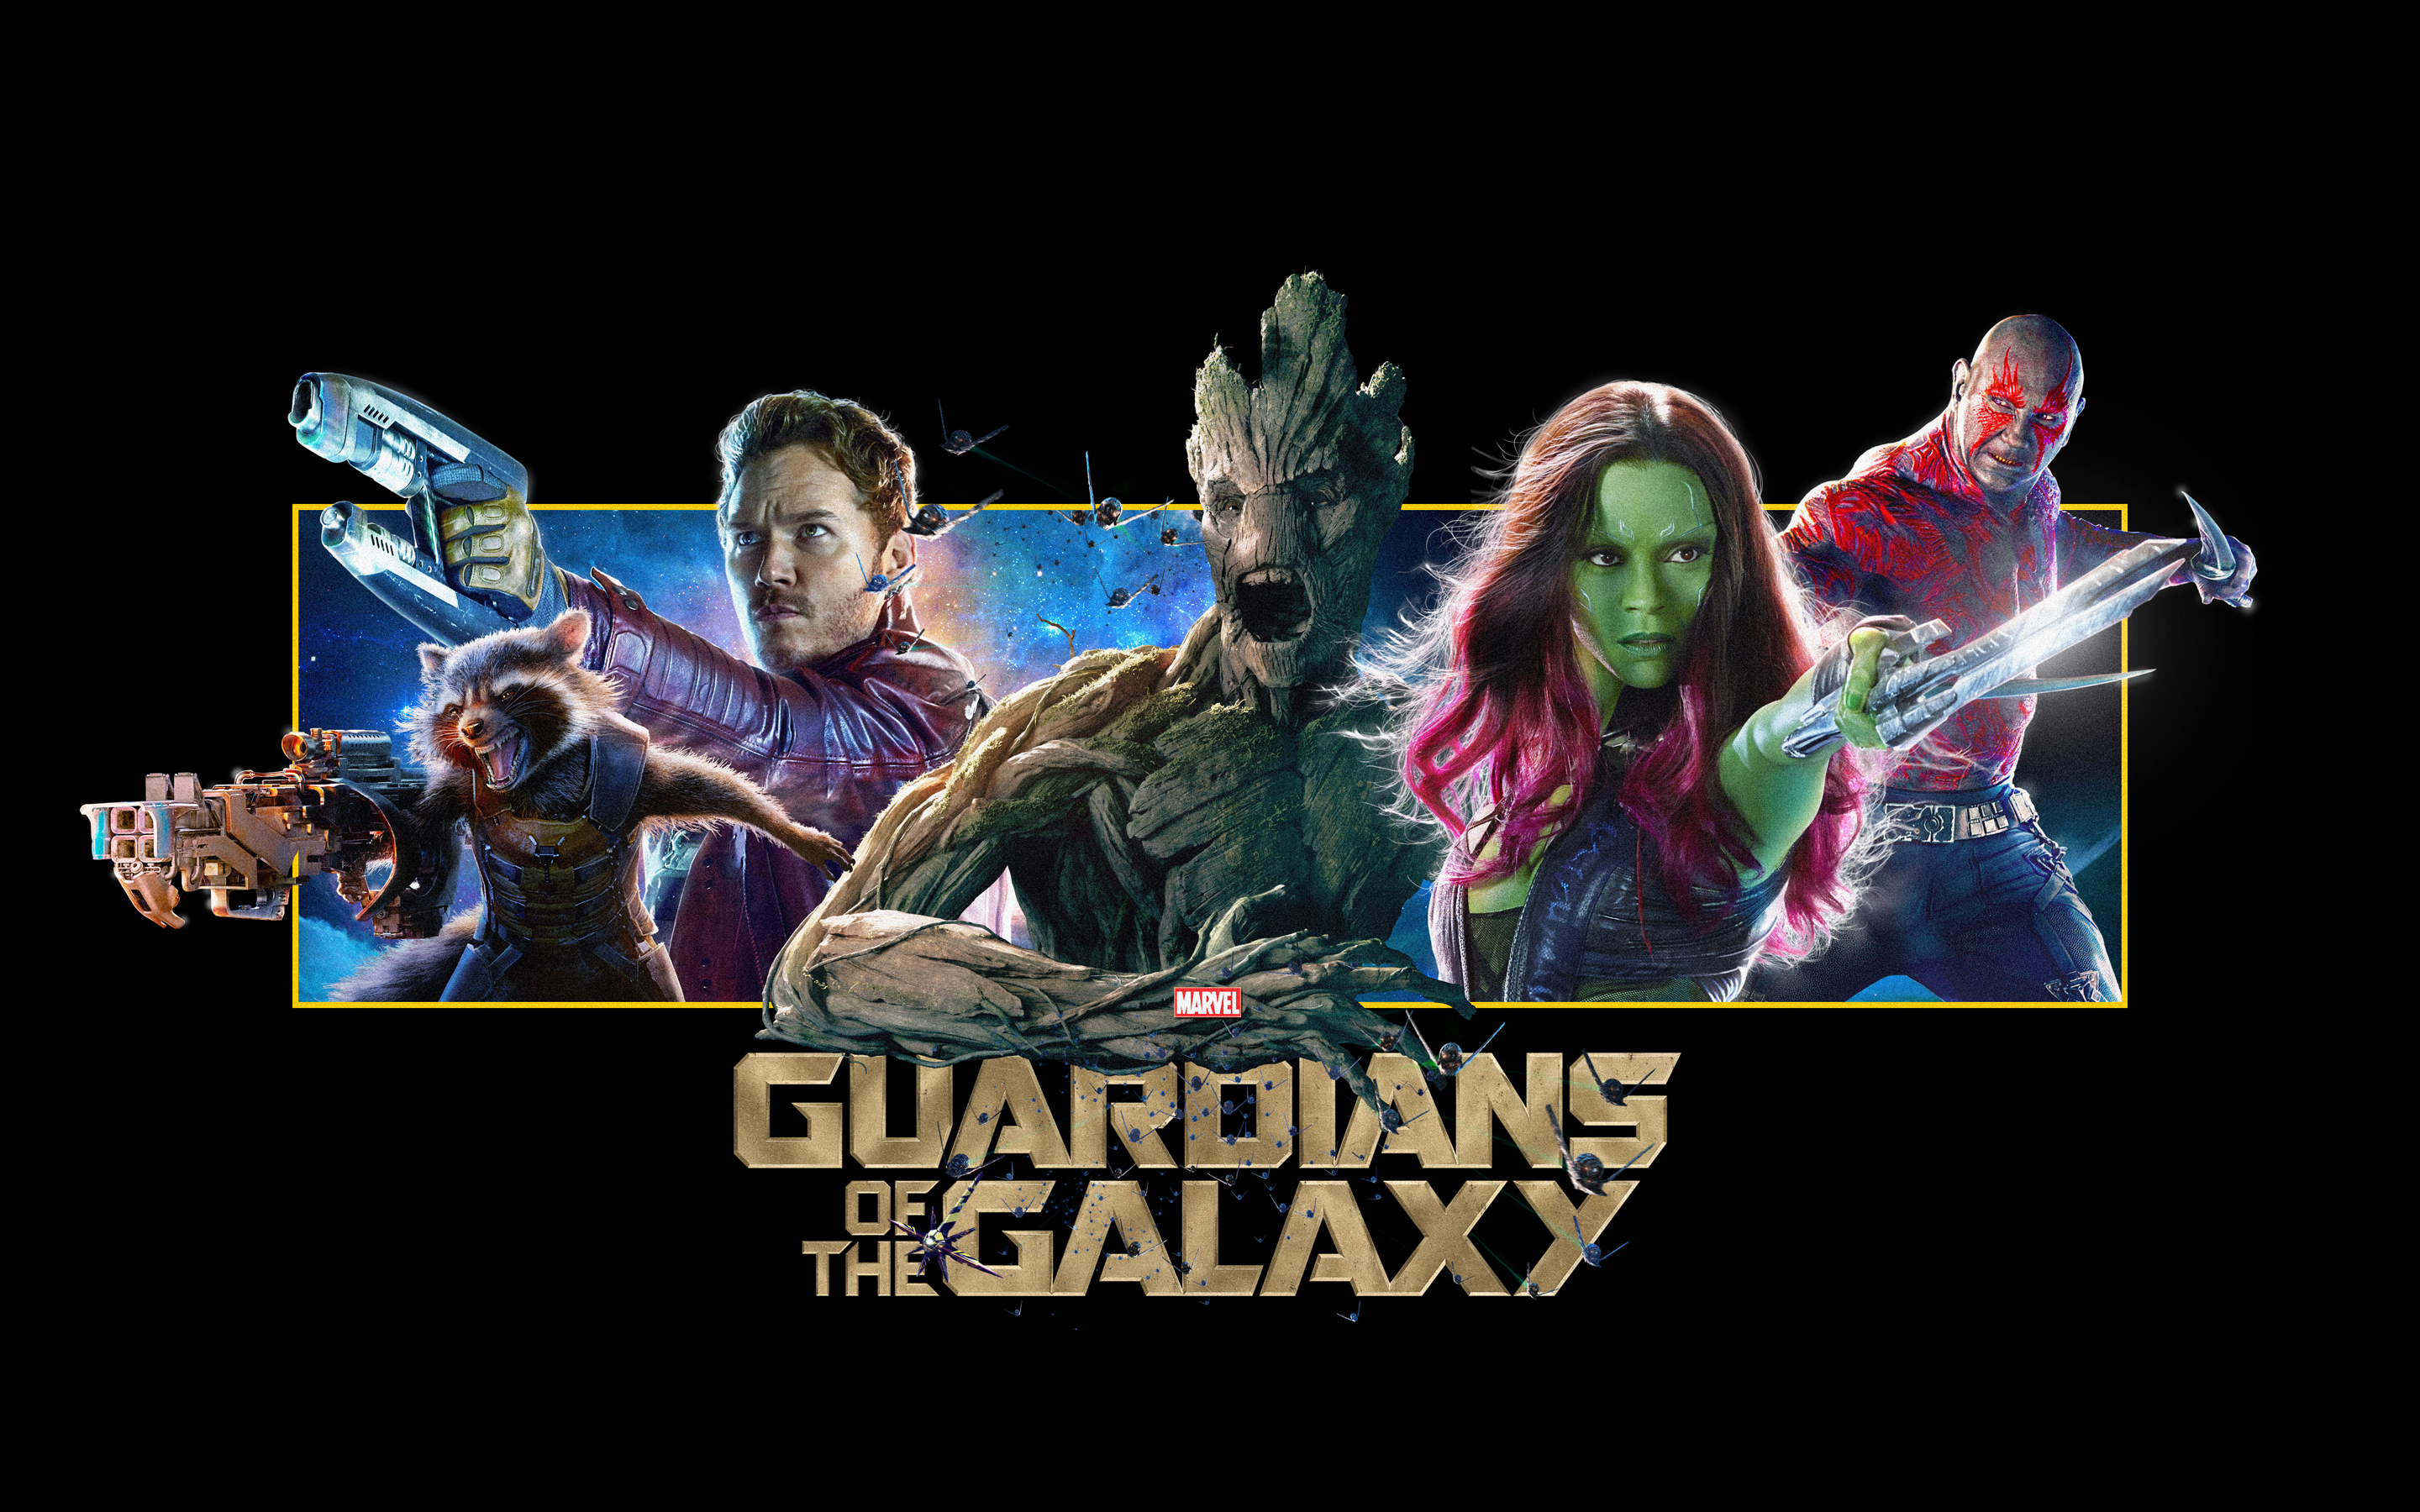 HD Wallpapers Guardians of the Galaxy Banner